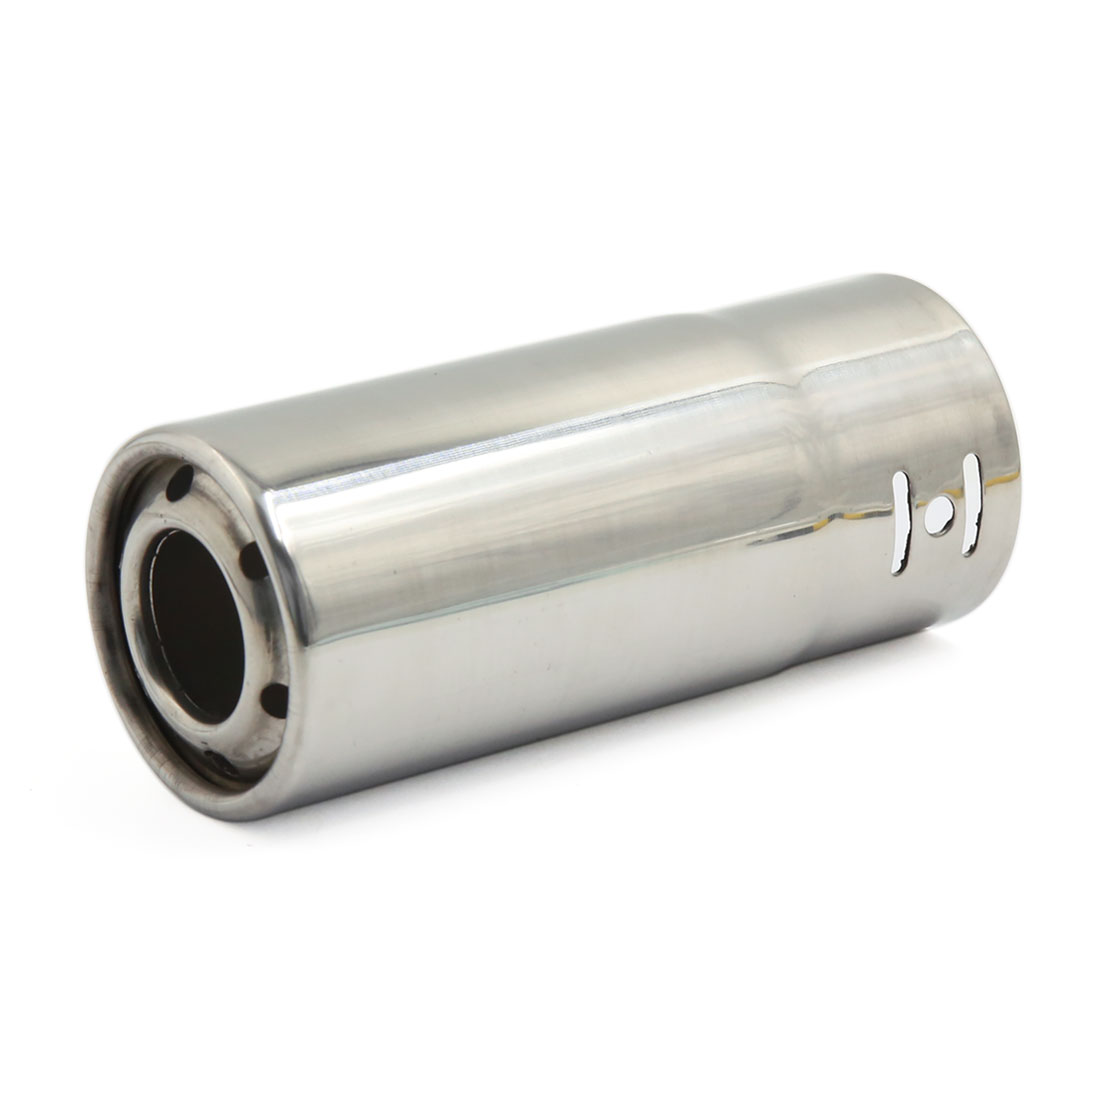 Unique Bargains 58mm Inlet Car Exhaust Muffler Straight Decorative Tip Stainless Steel Tail Pipe